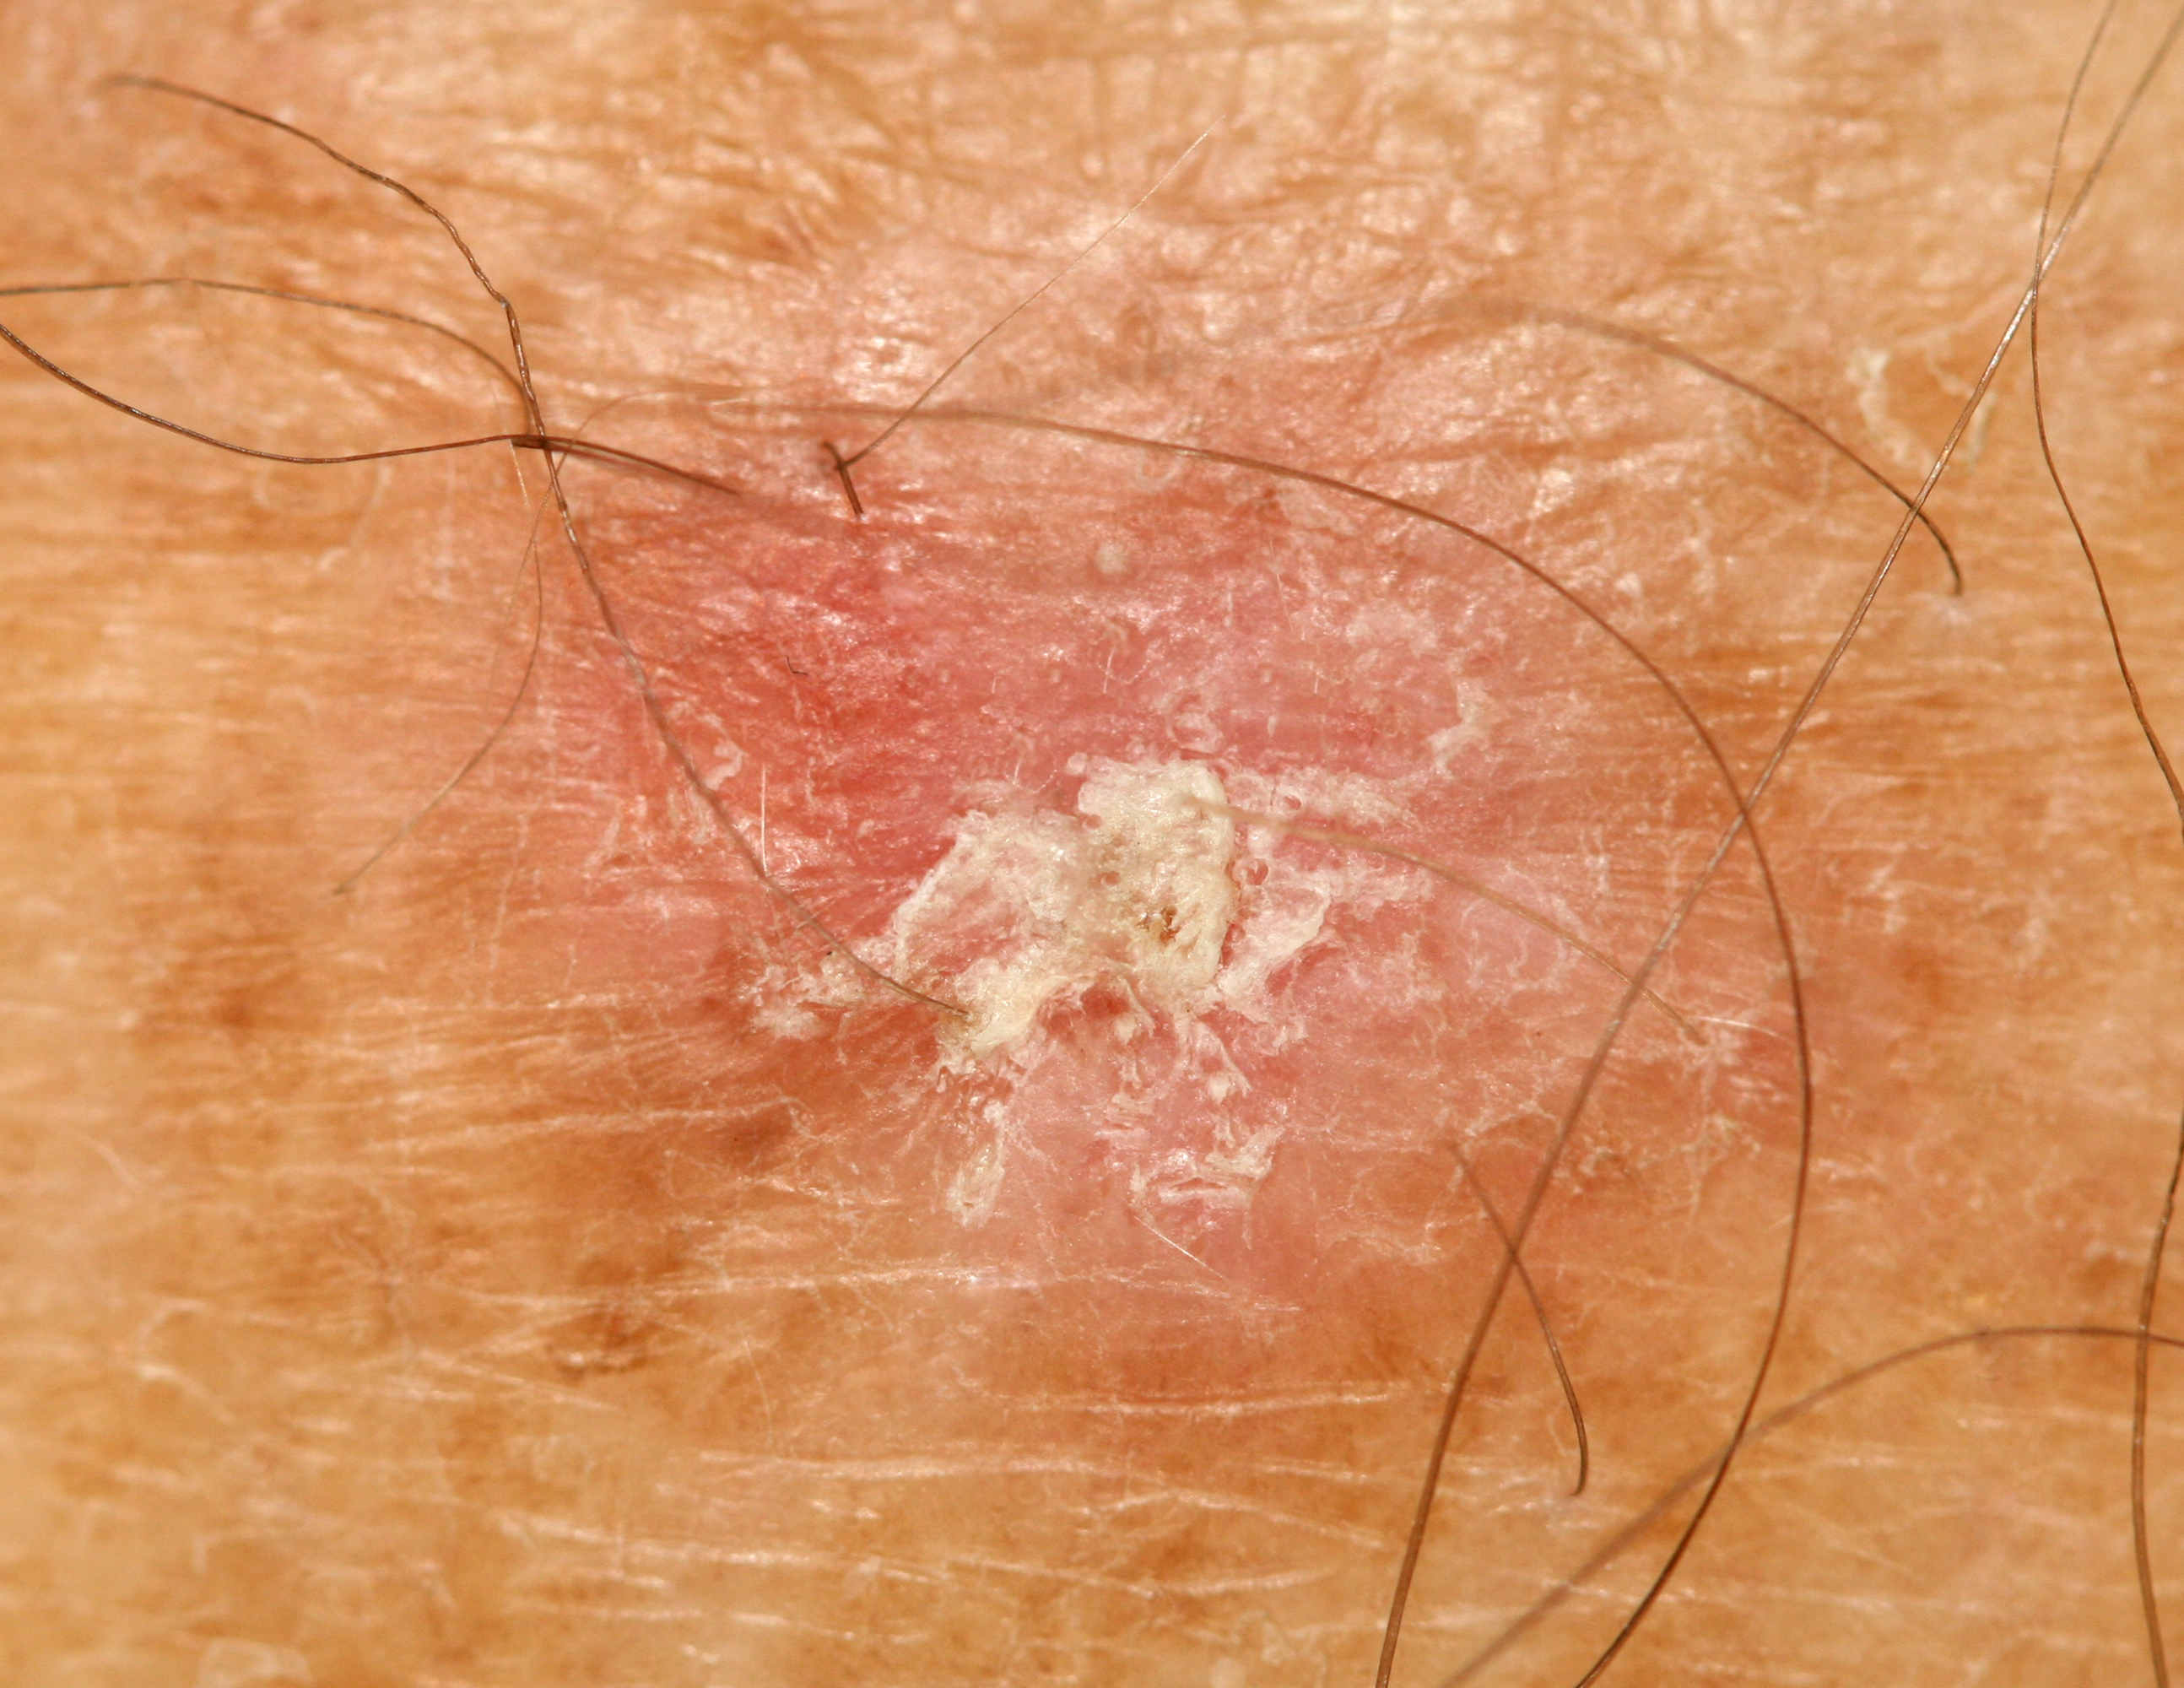 Can Skin Cancer Come and Go?